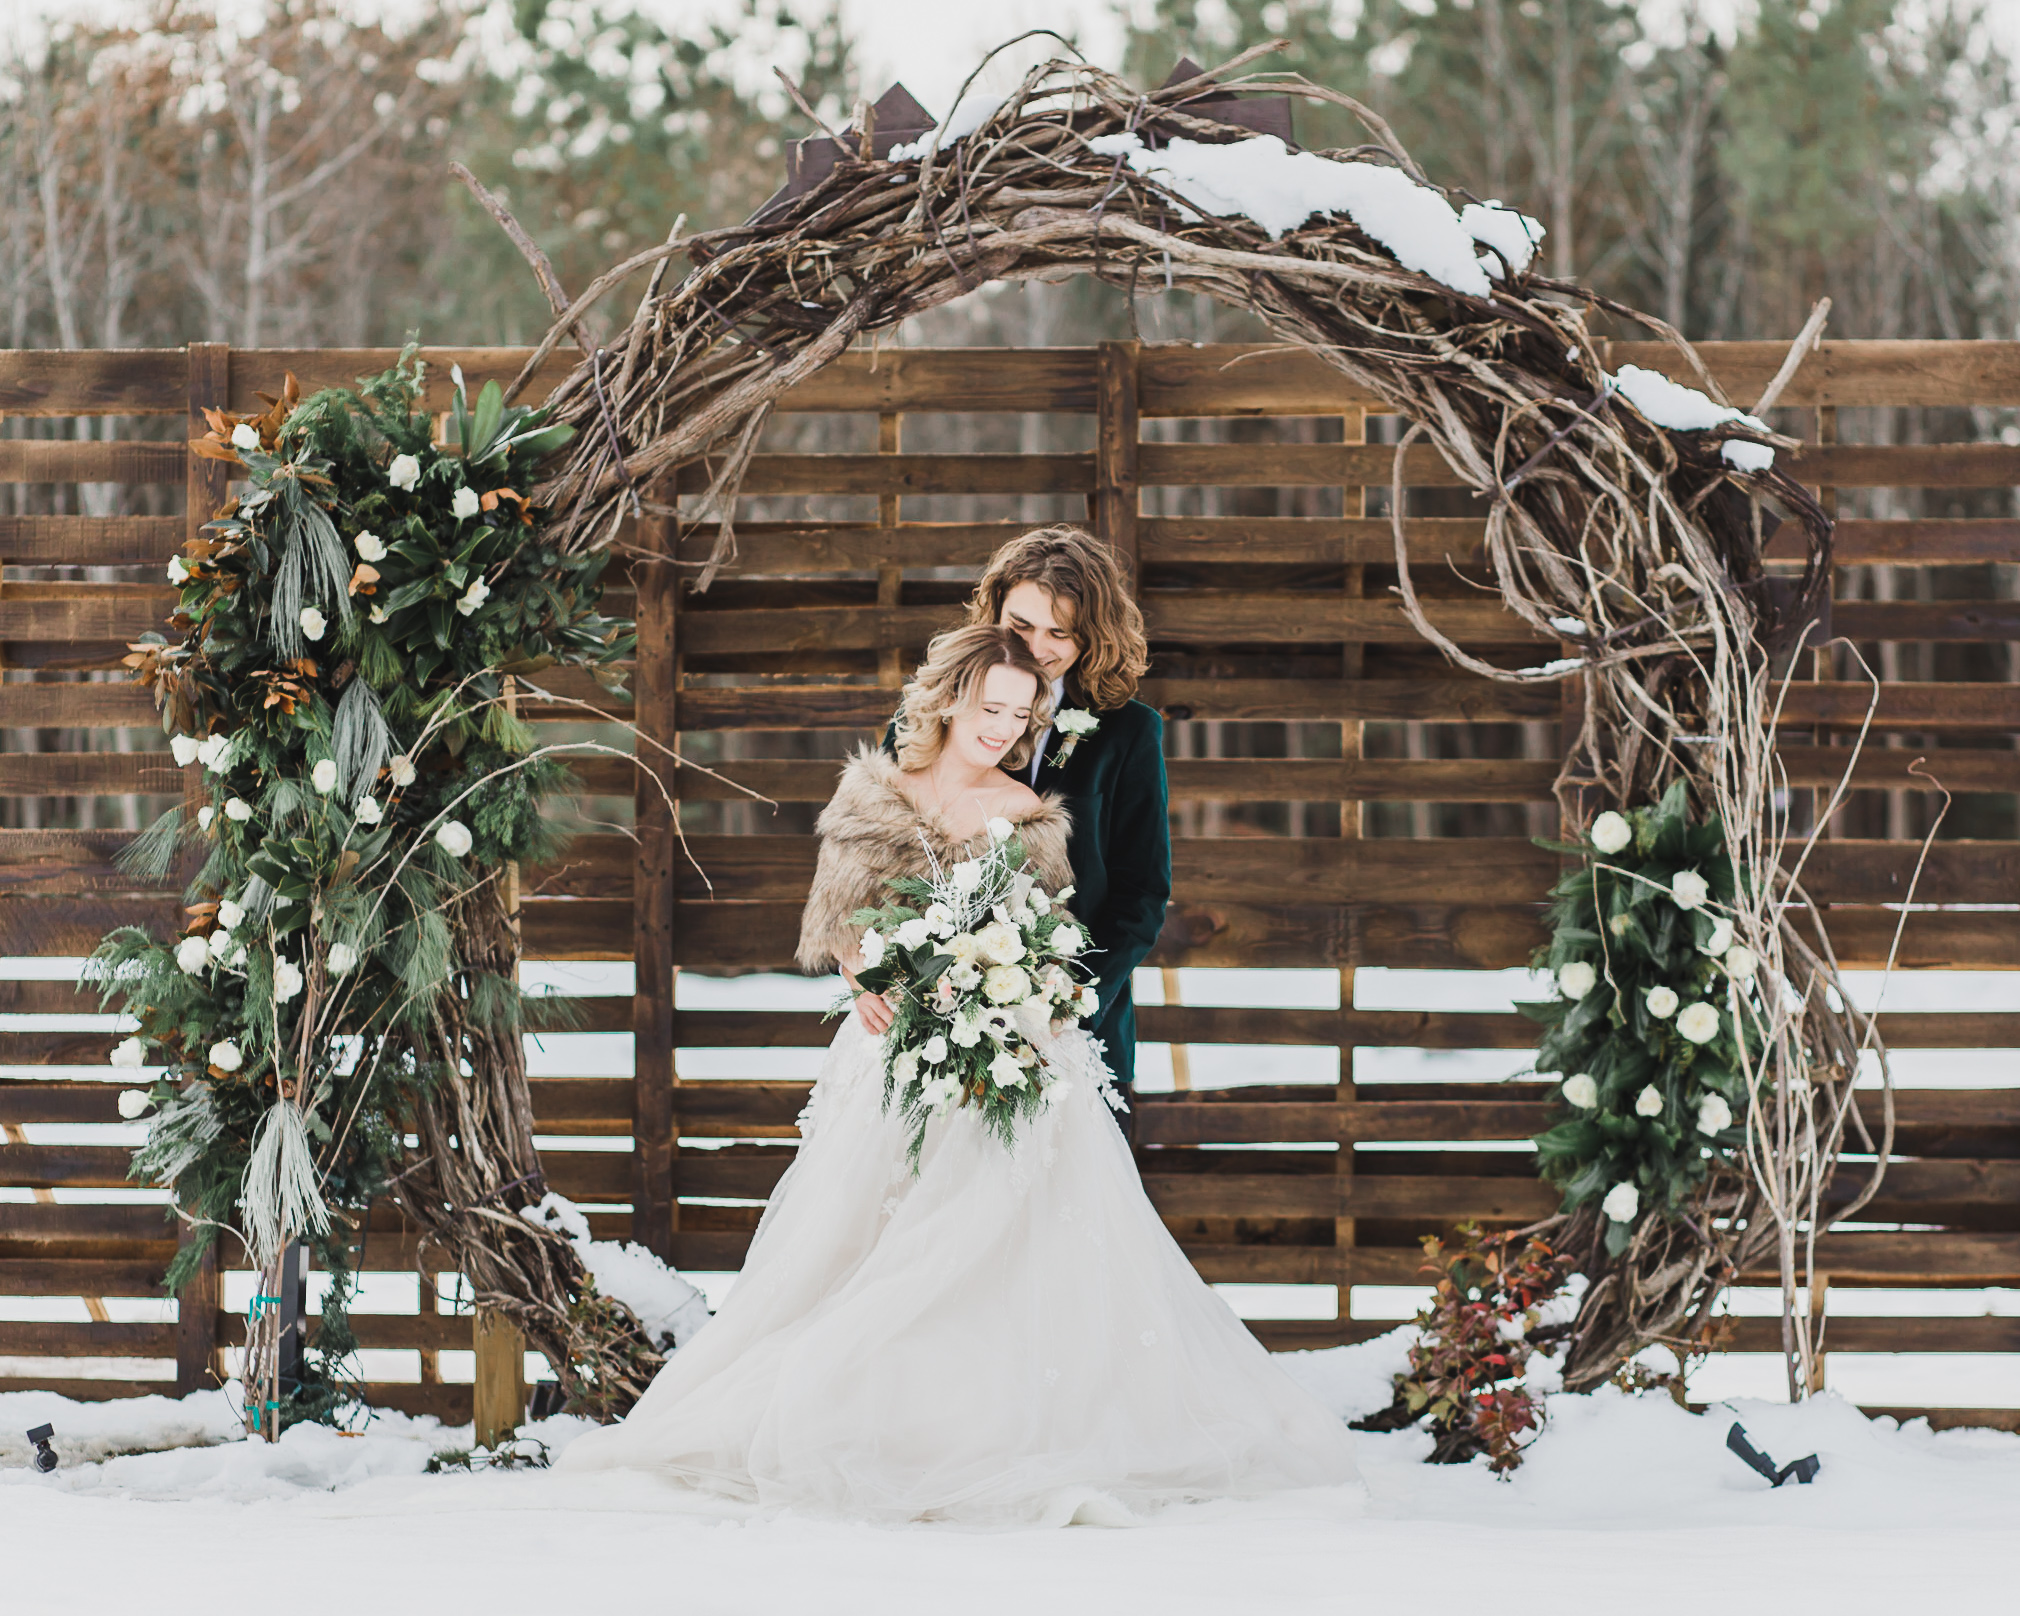 Winter Wedding Styled Shoot201812125947.jpg